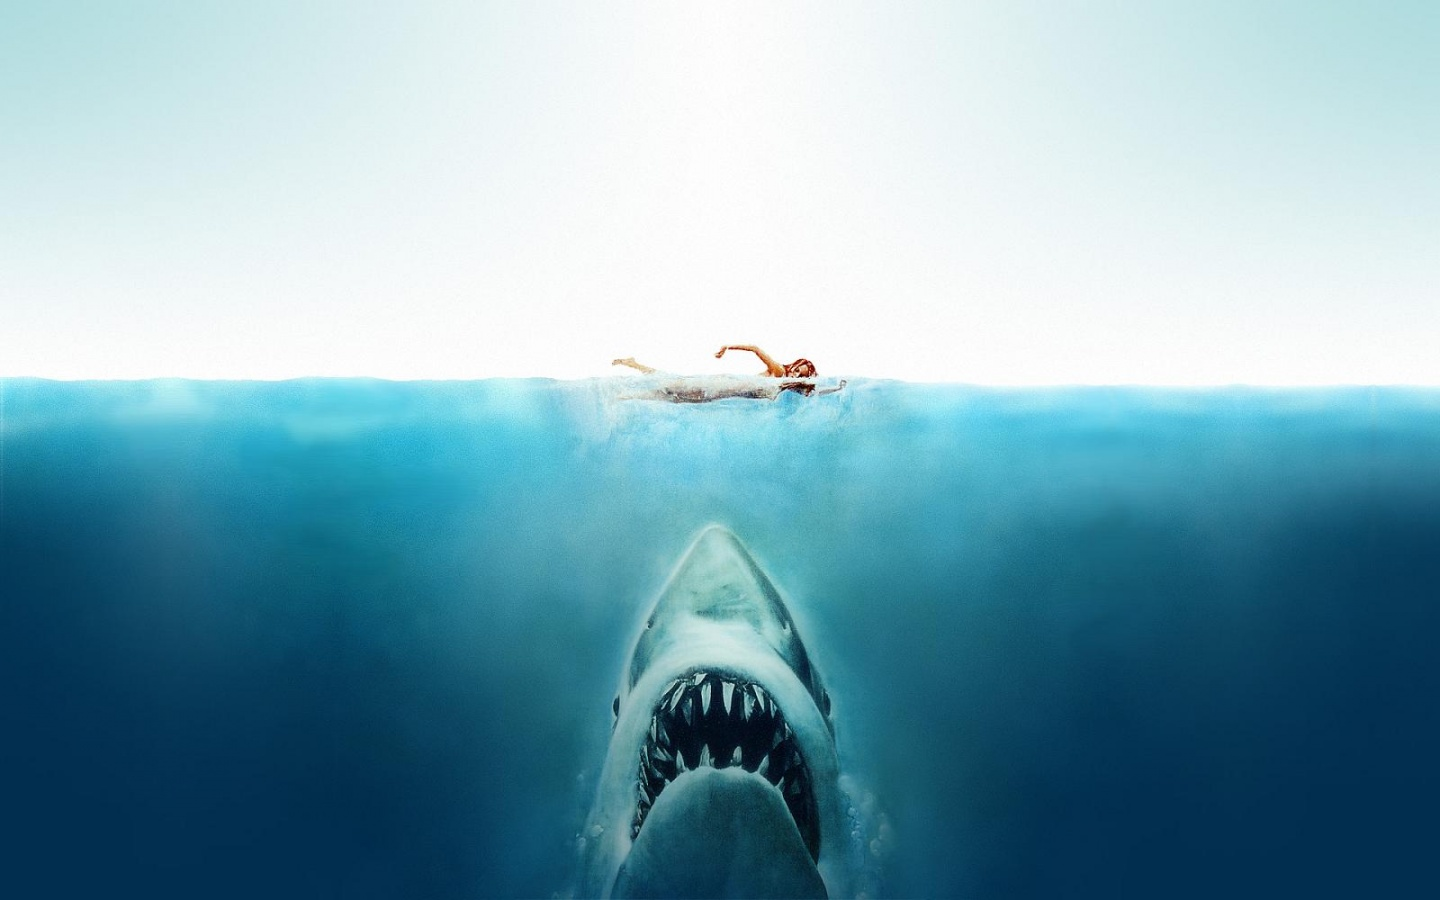 Photo courtesy of http://hellogiggles.com/jaws-is-the-scariest-movie/